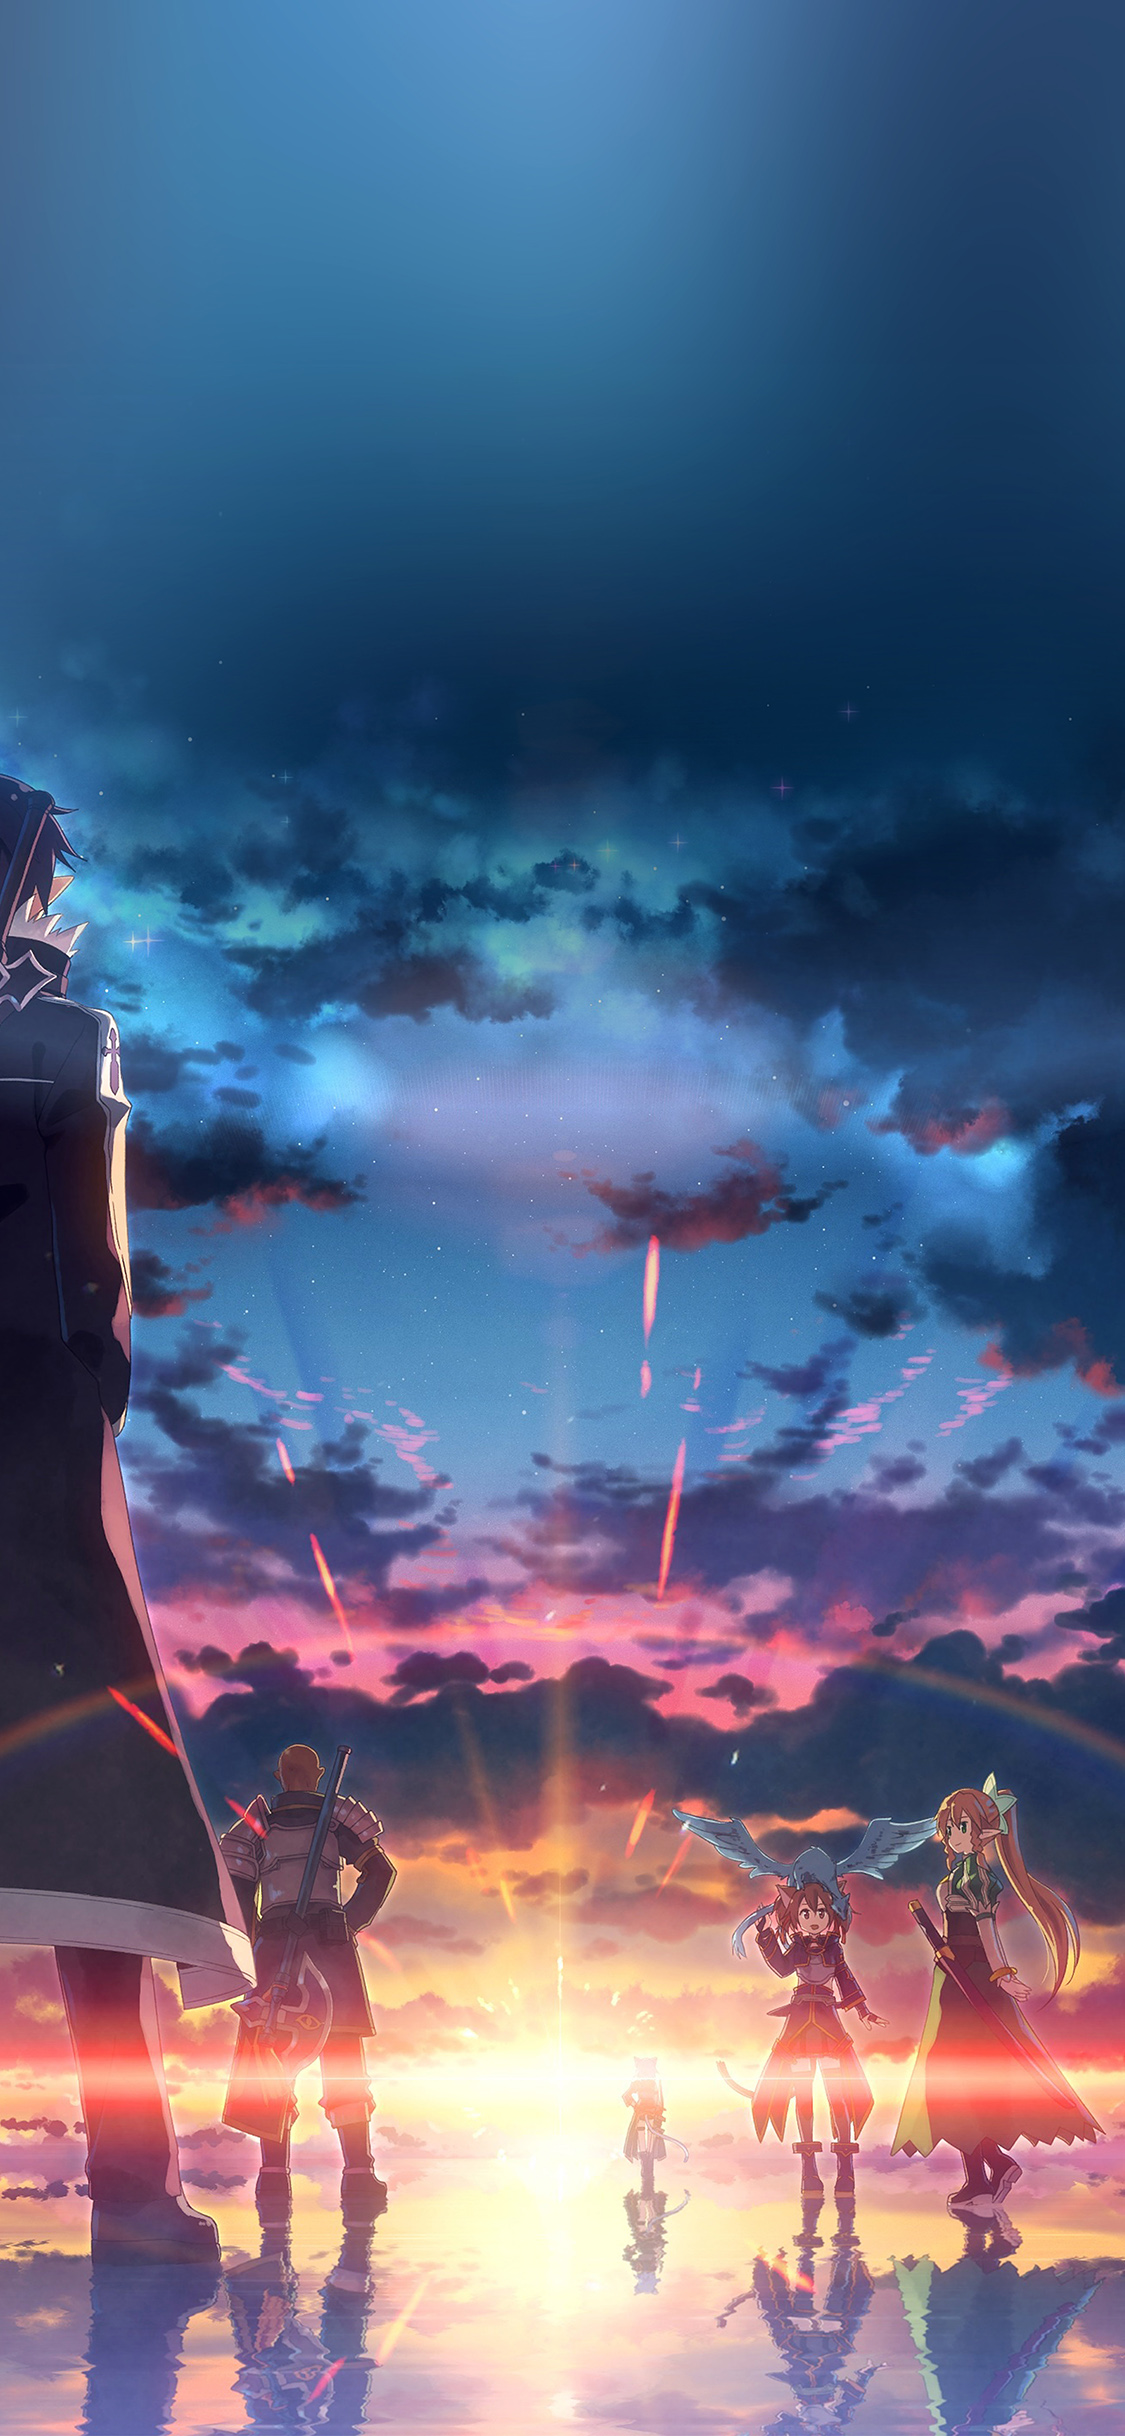 Papers Co Iphone Wallpaper Ao16 Anime Art Sunset Drawing